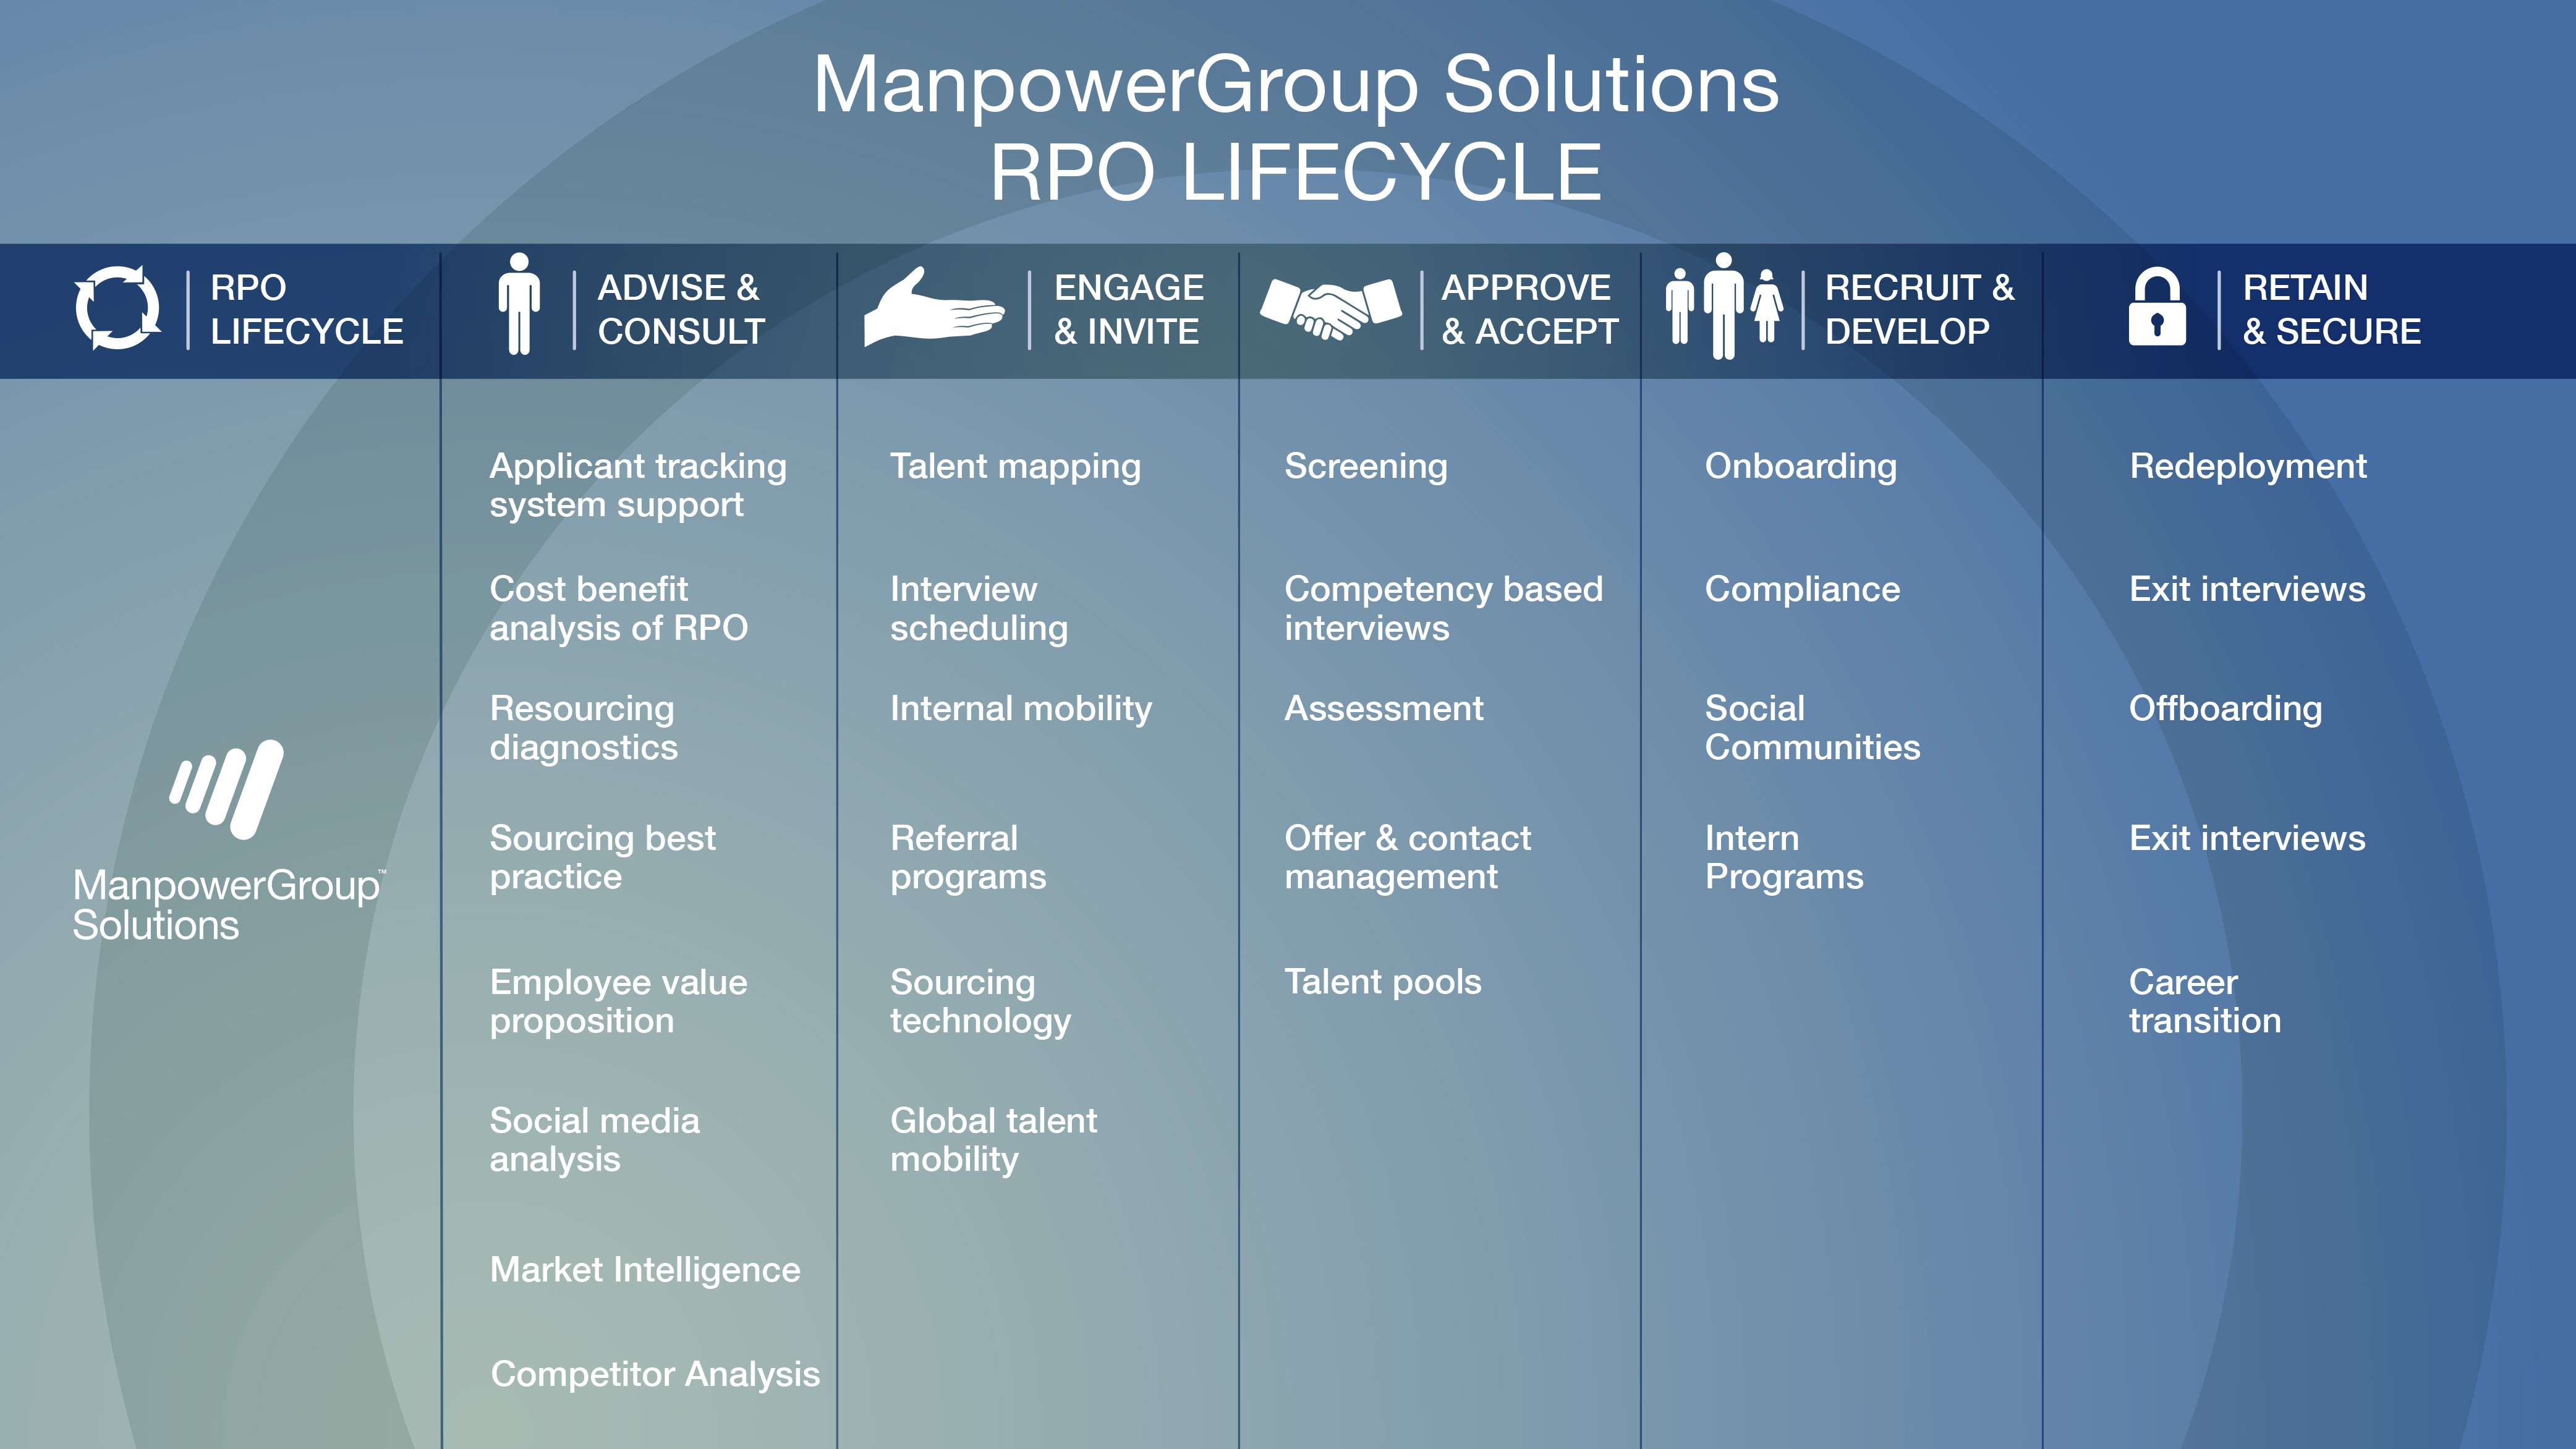 A large image highlighting the scope of RPO Solutions